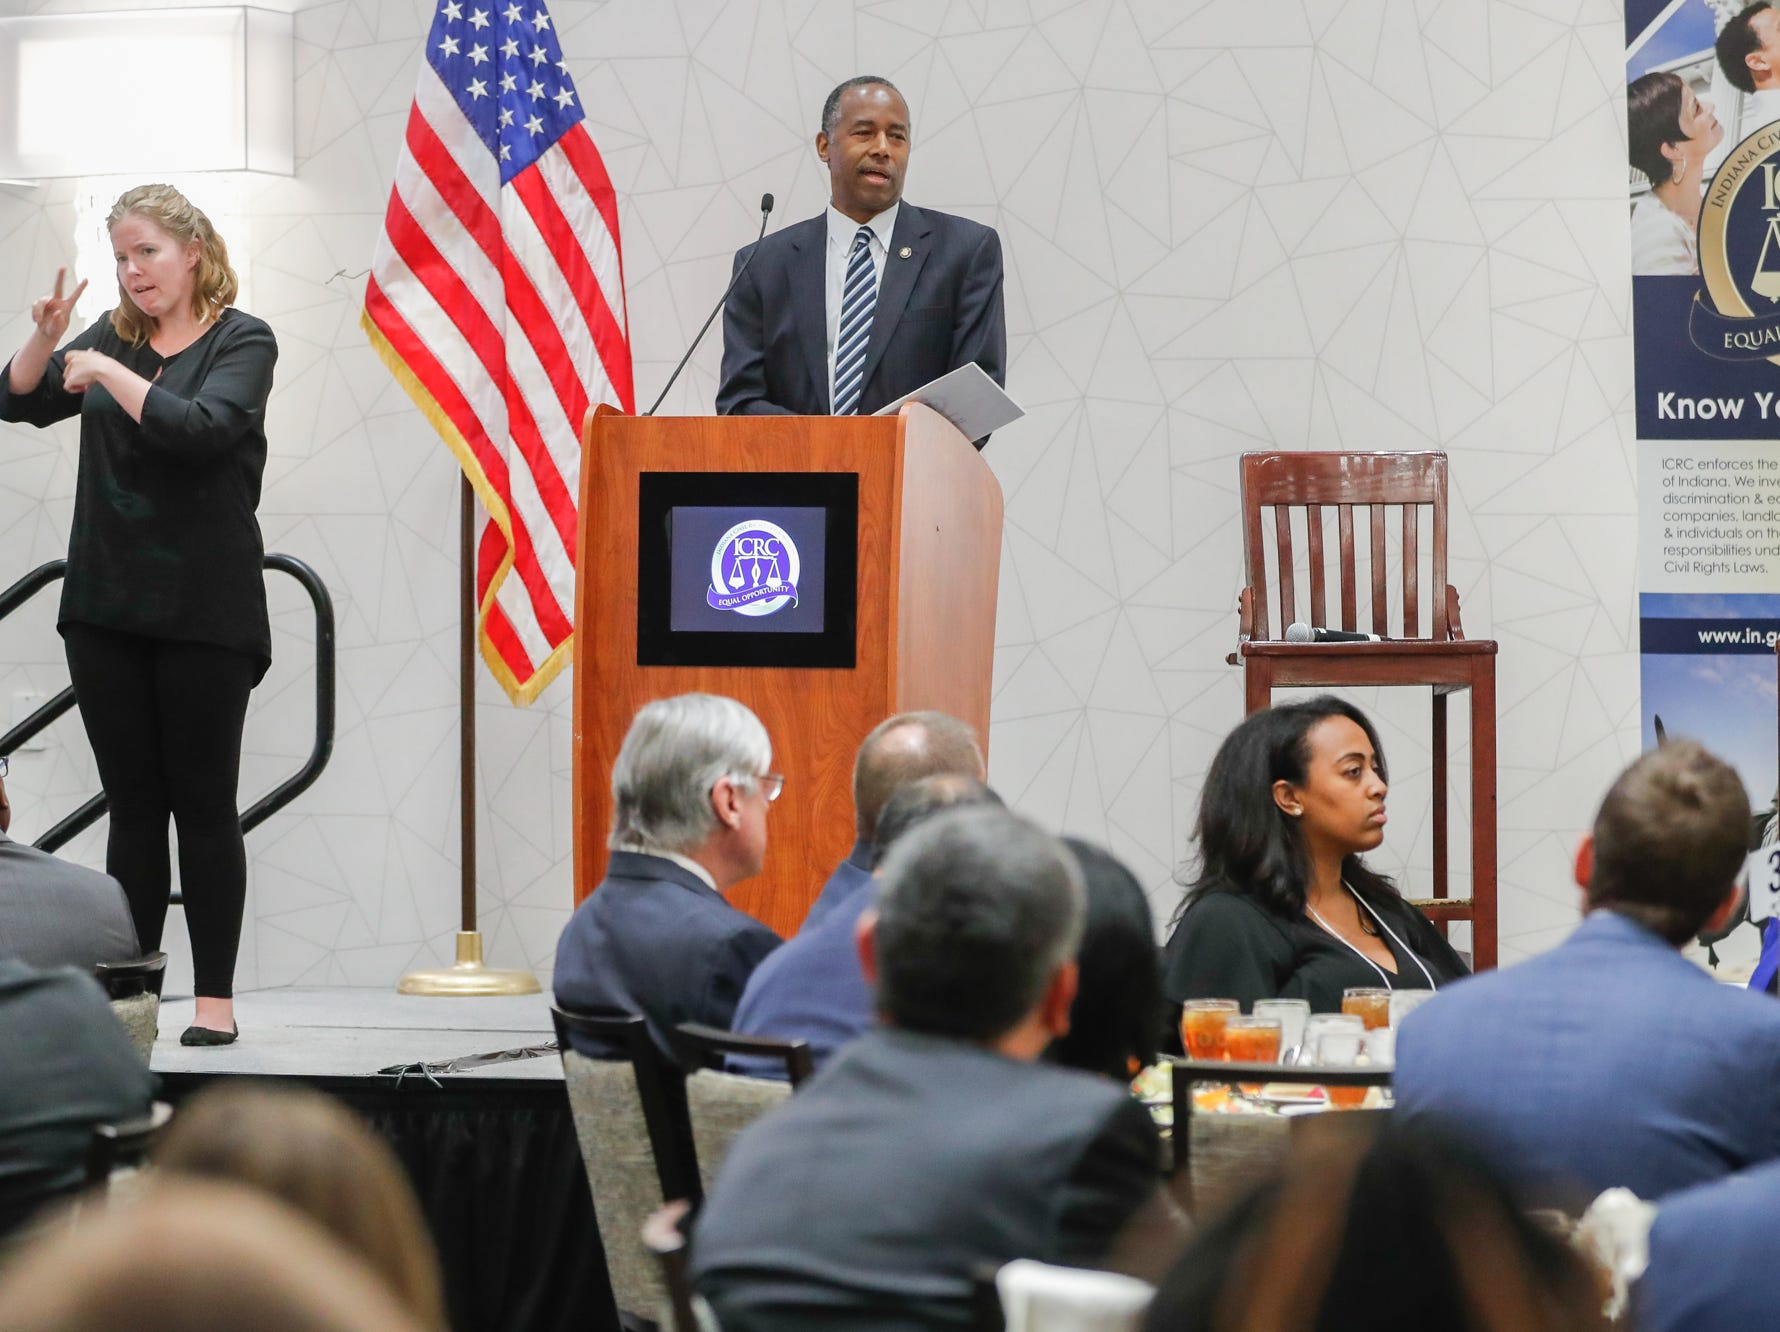 HUD Secretary Ben Carson gives the Keynote speech during the Indiana Civil Rights Commission's Fair Housing Law and Policy Conference, held at the     Sheraton Indianapolis City Centre Hotel on Wednesday, Oct. 10, 2018.